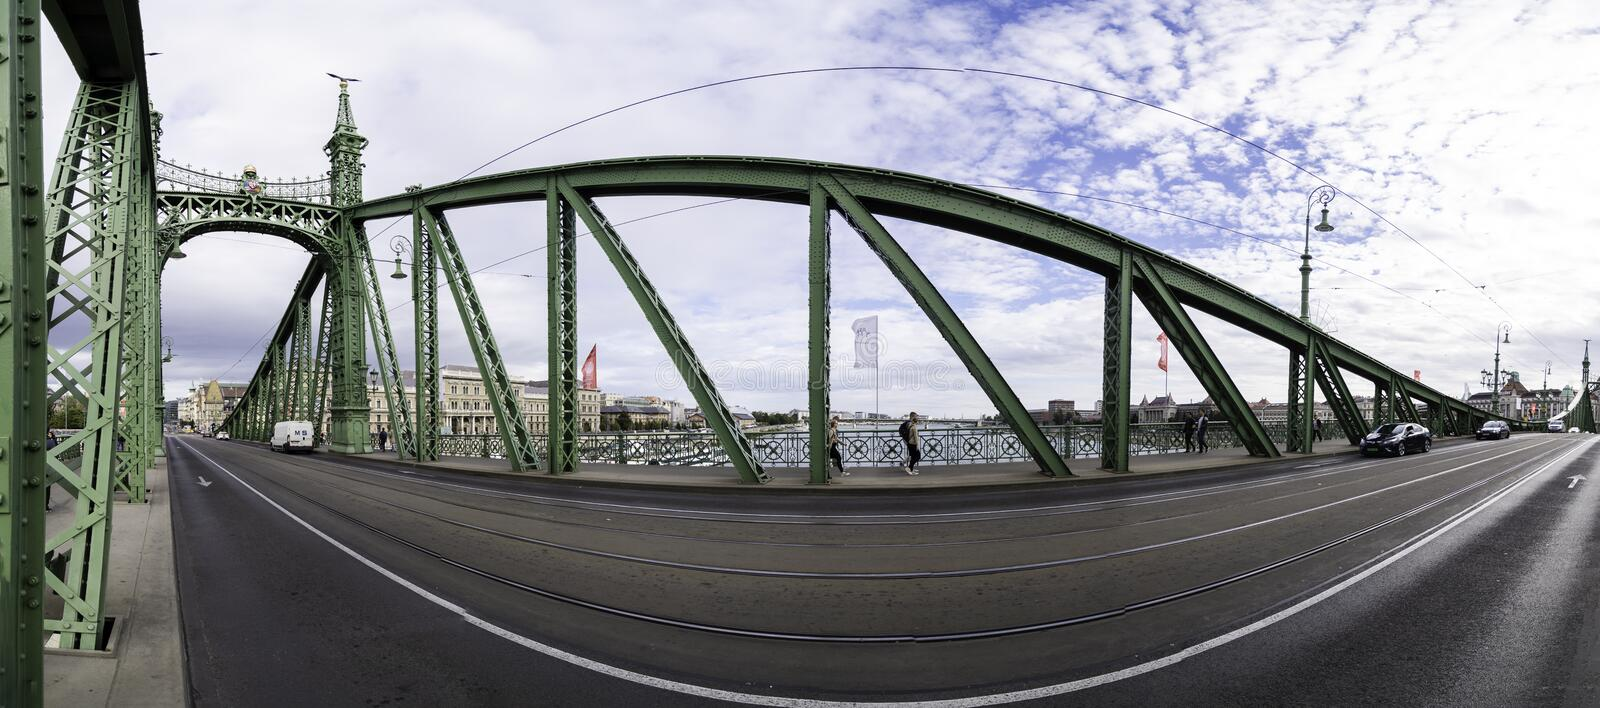 Panoramic photograph of the interior of the Budapest Freedom Bridge, with its cast iron structure and decorated towers. Panoramic photograph of the interior of stock photos